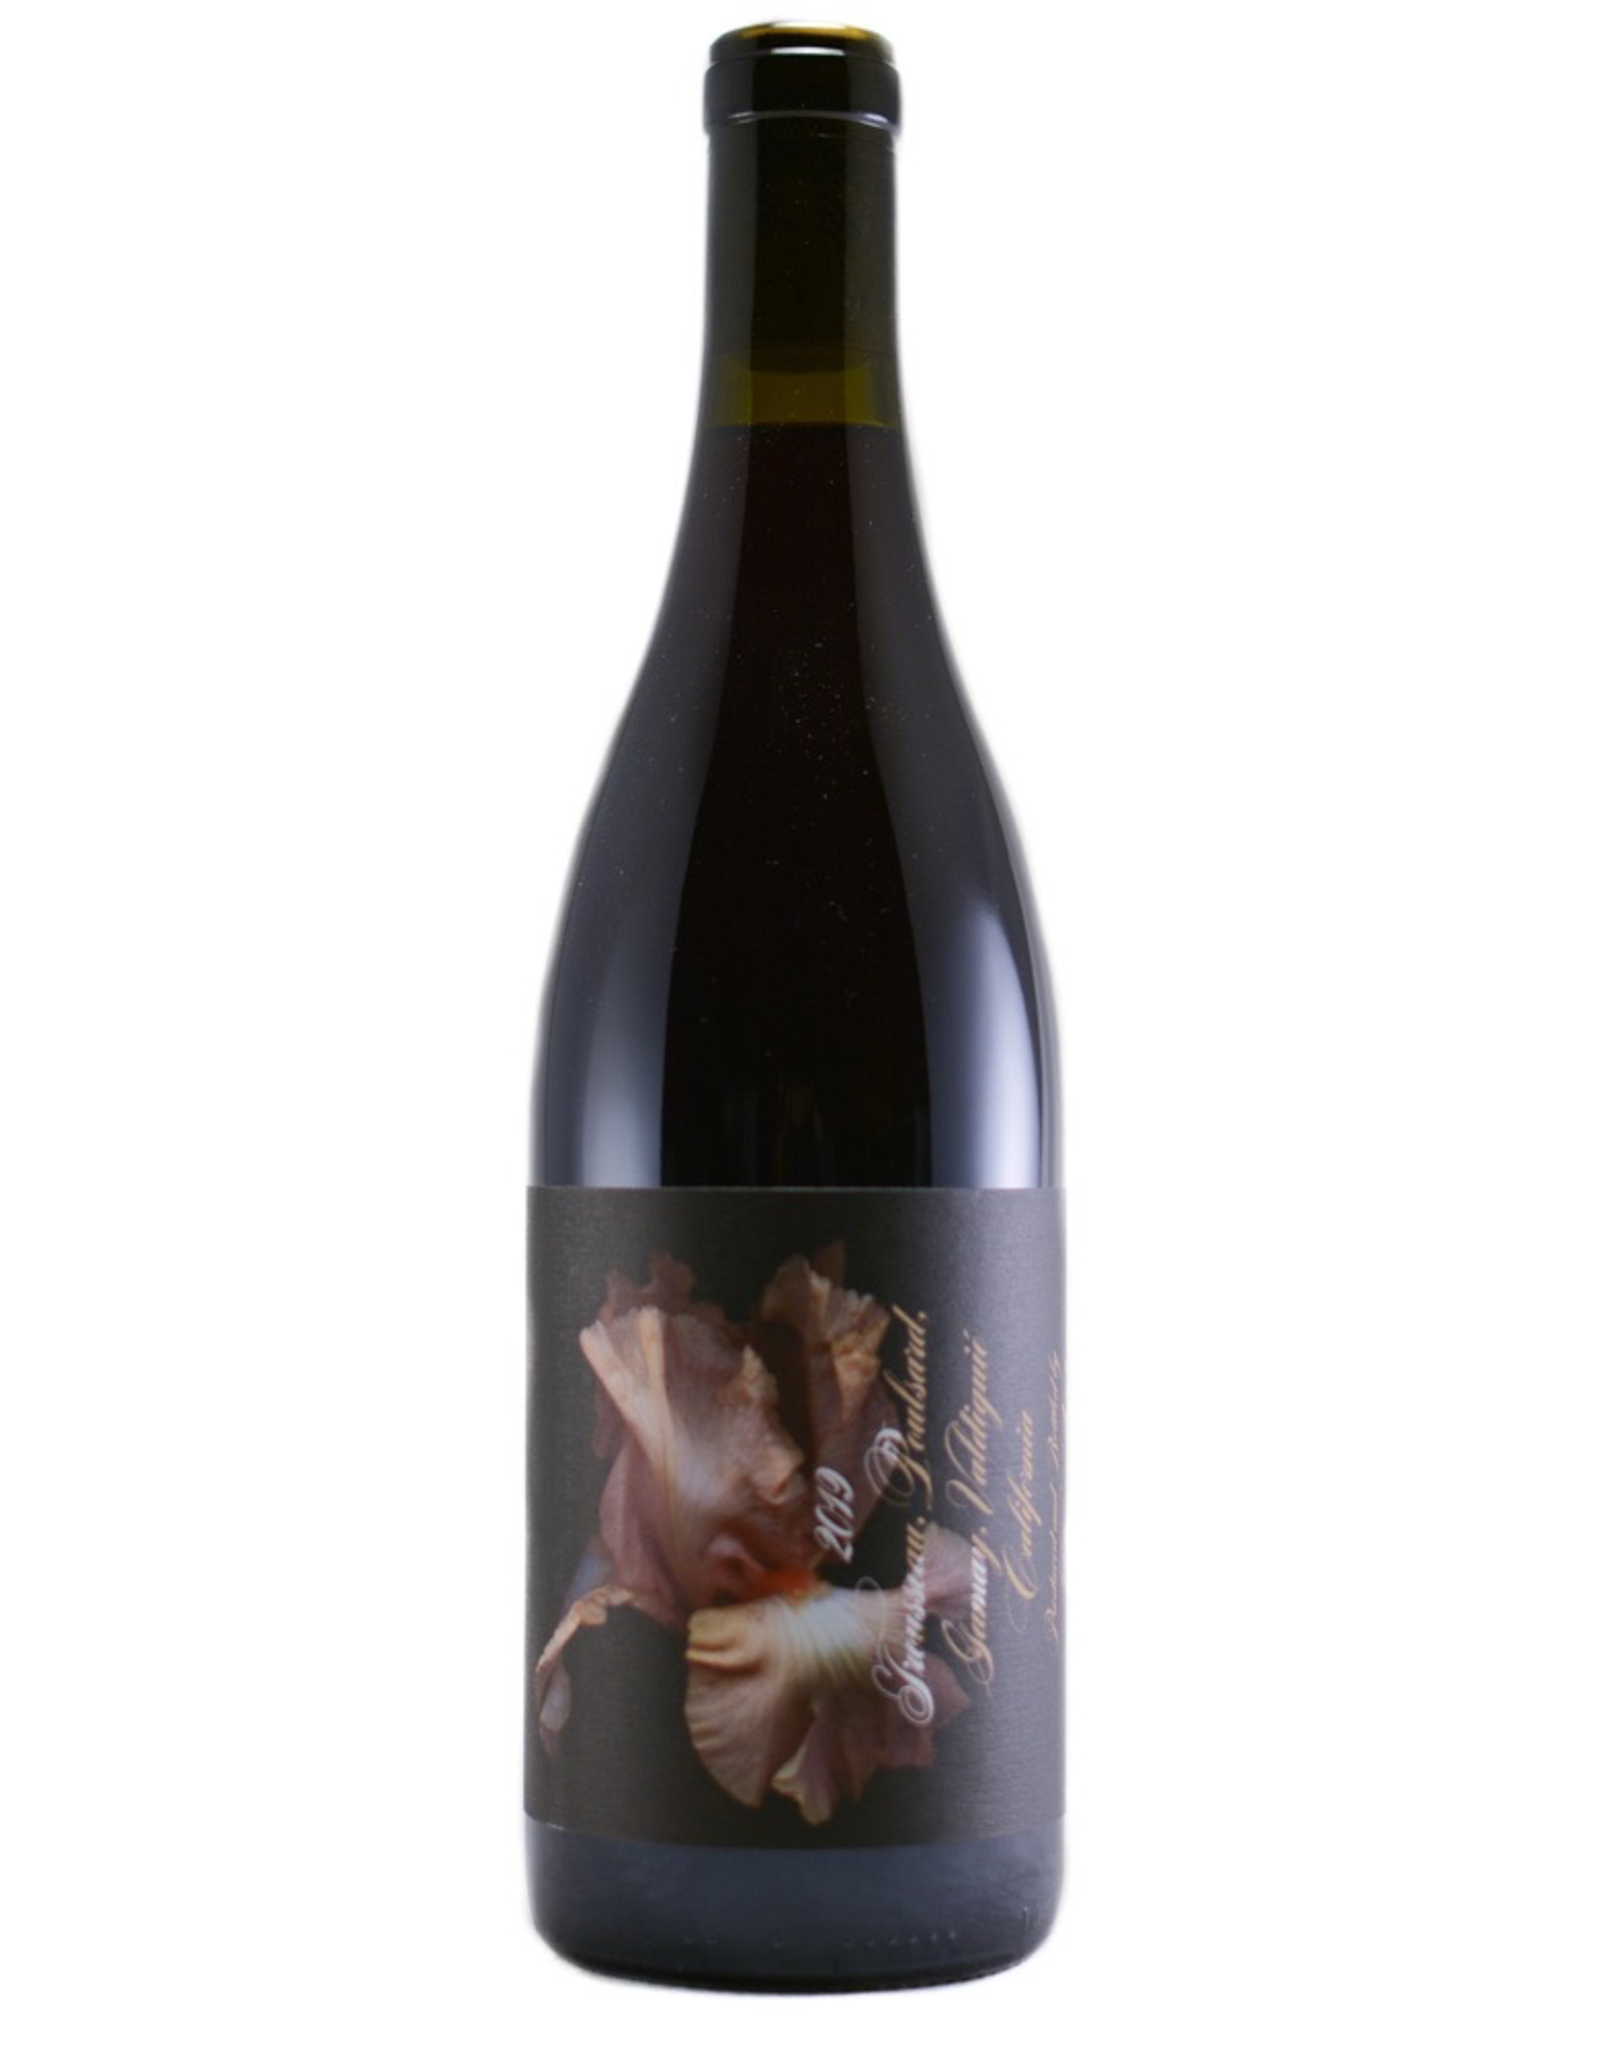 Red Wine 2019, Jolie-Laide Trousseau Poulsard, Red Blend TROUSSEAU NOIR, POULSARD, GAMAY, VALDIGUIÉ, Sebastopol, North Coast, California, 12.3% Alc, CTnr